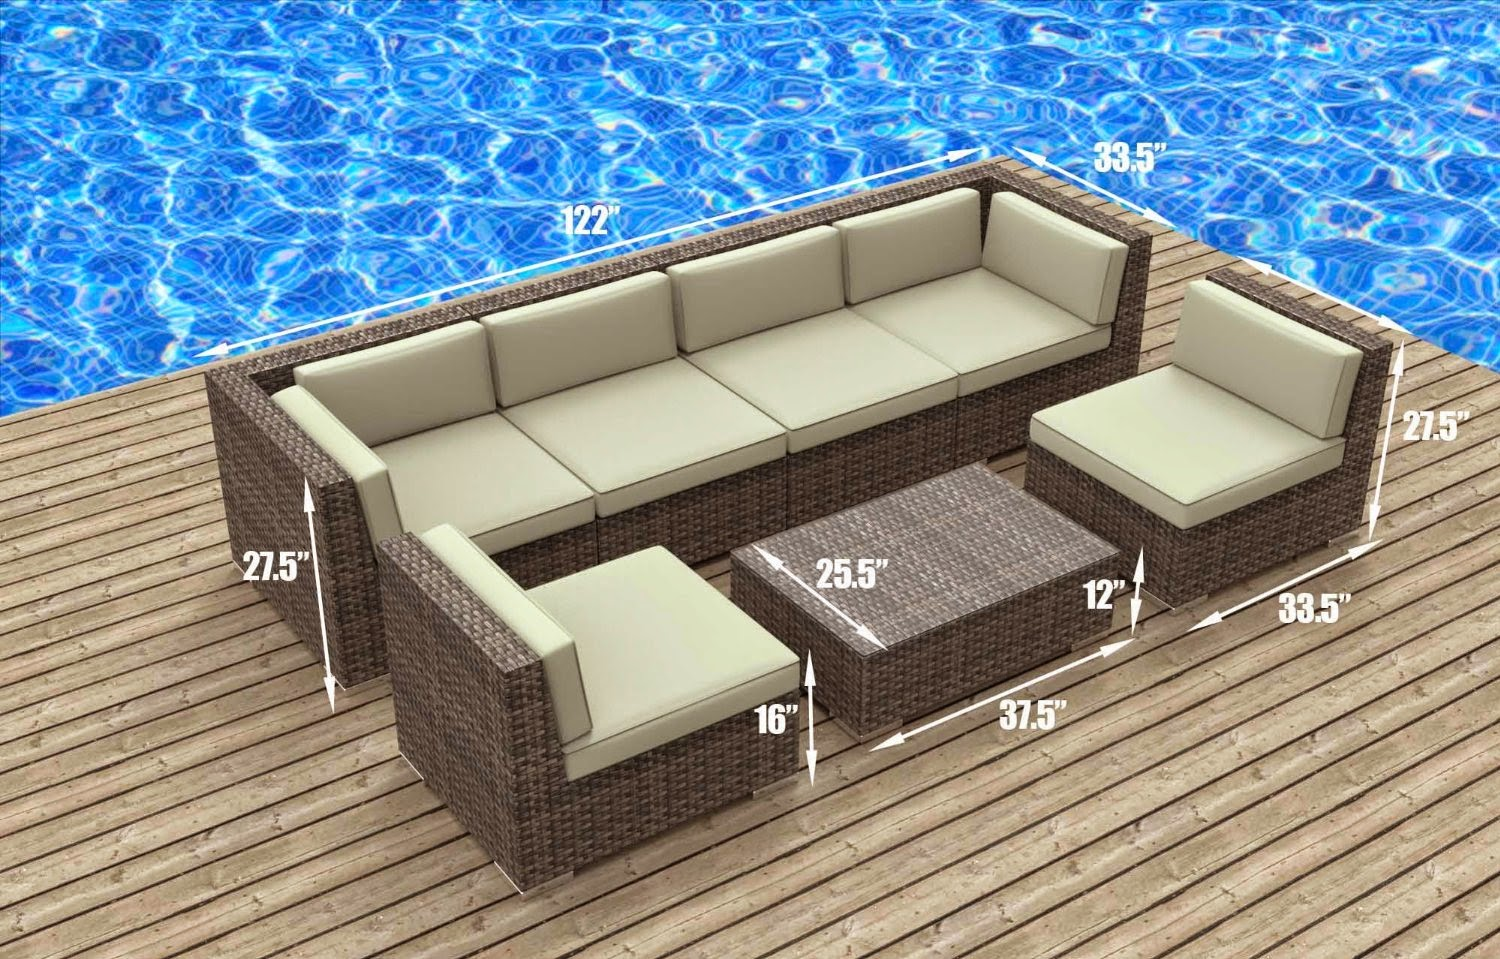 Urban Furnishing Modern Outdoor Backyard Wicker Rattan Patio Furniture Sofa Sectional Couch Set